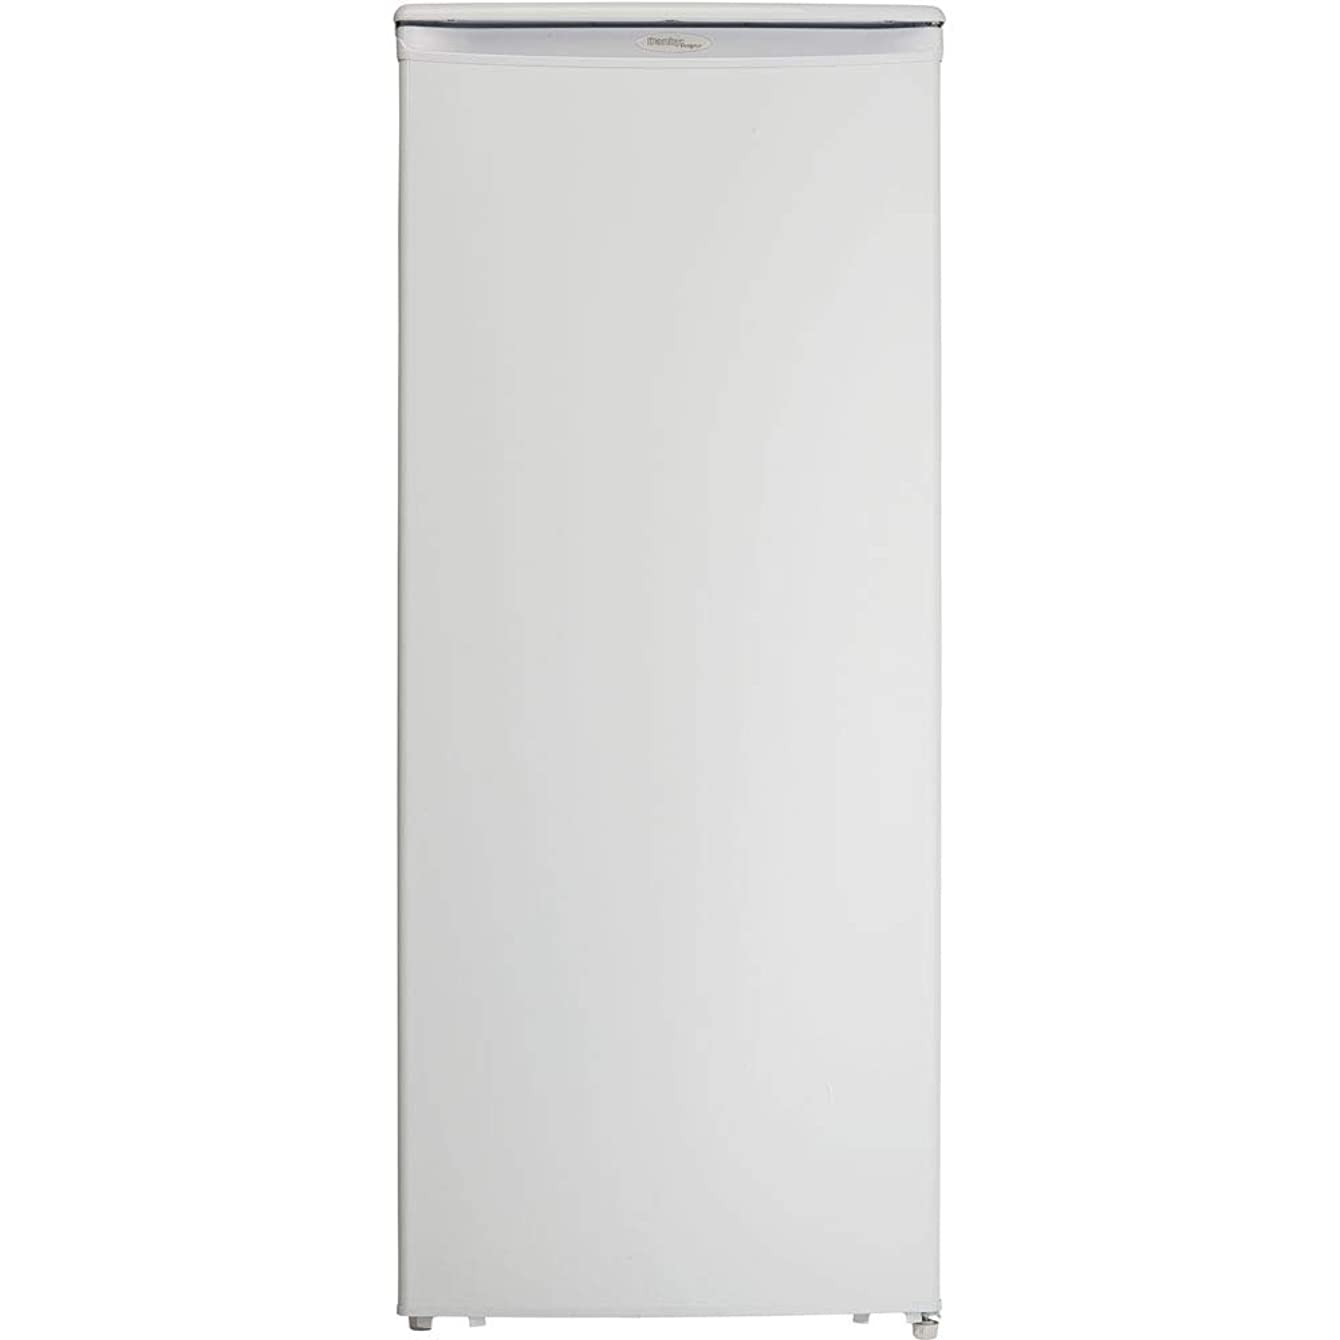 Danby Energy Star 10.1-Cu. Ft. Upright Freezer in White